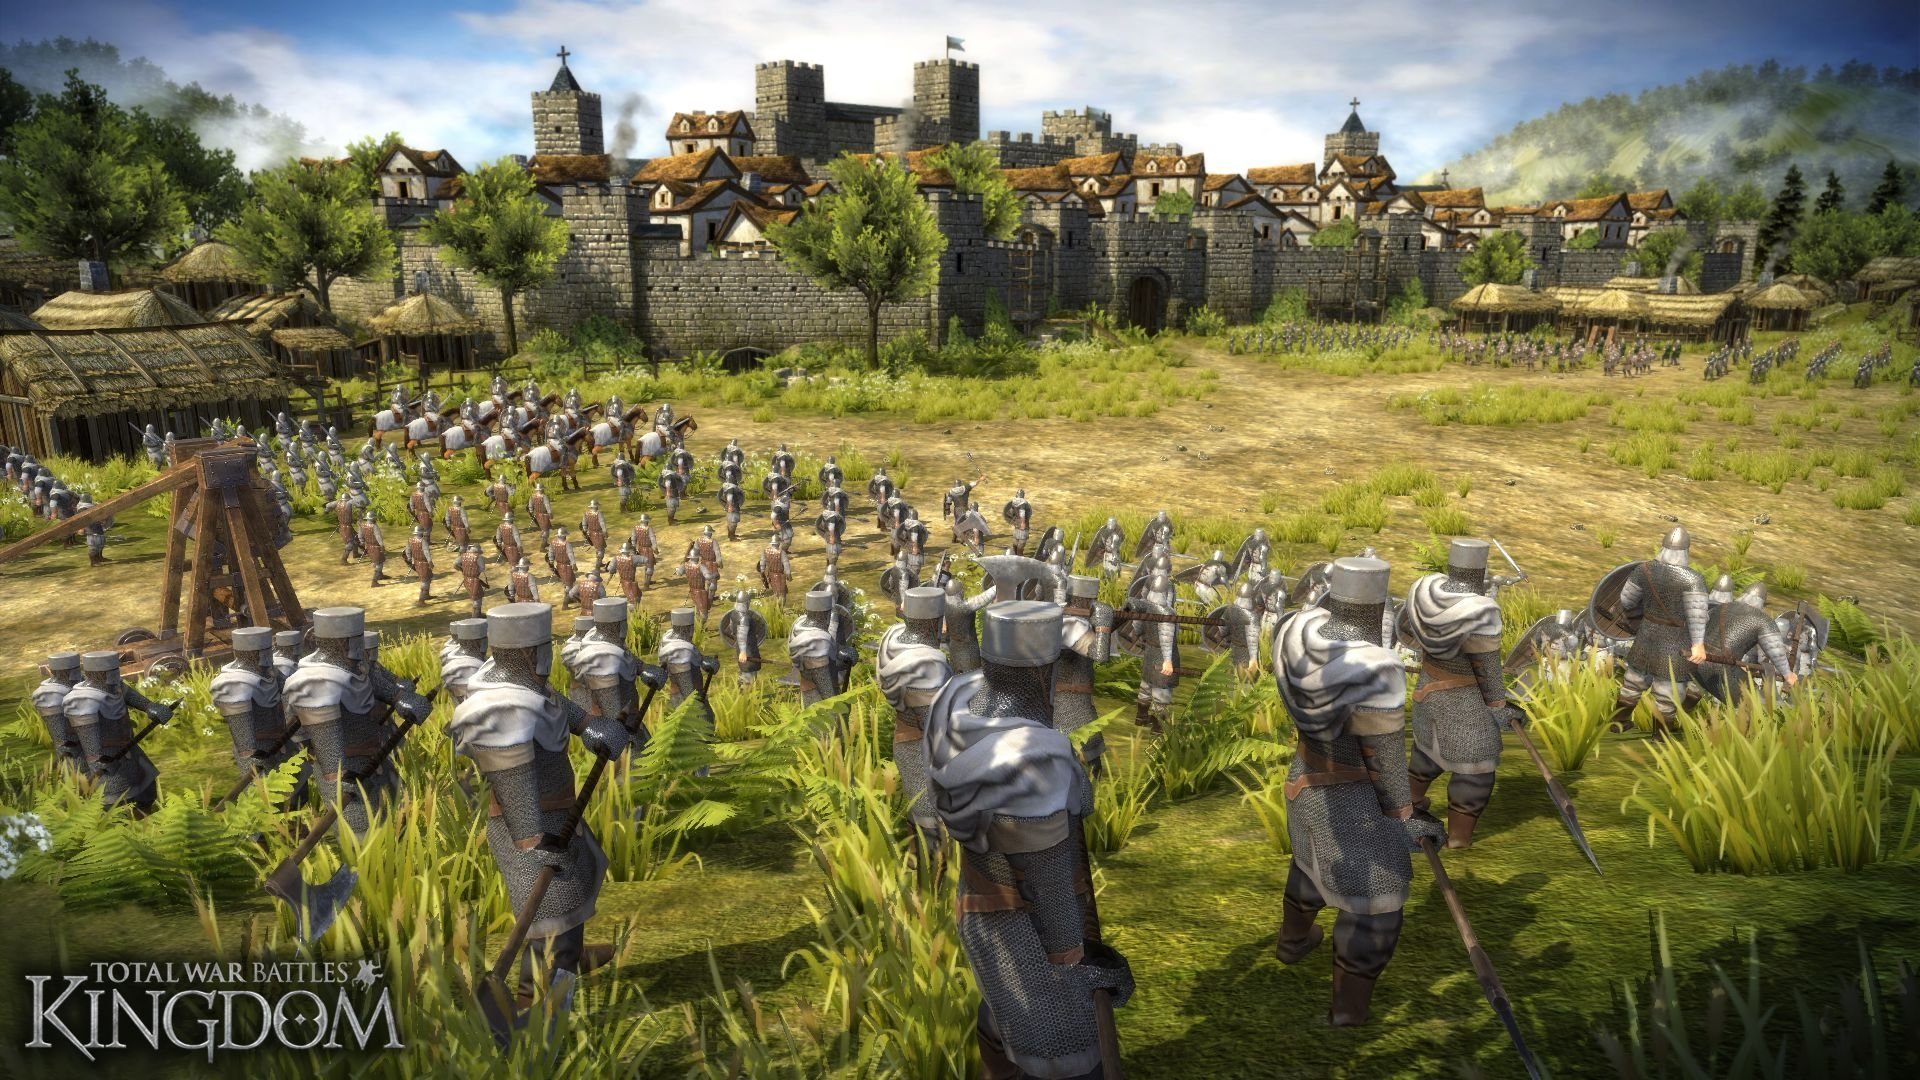 Imagenes De Total War Battles Kingdom